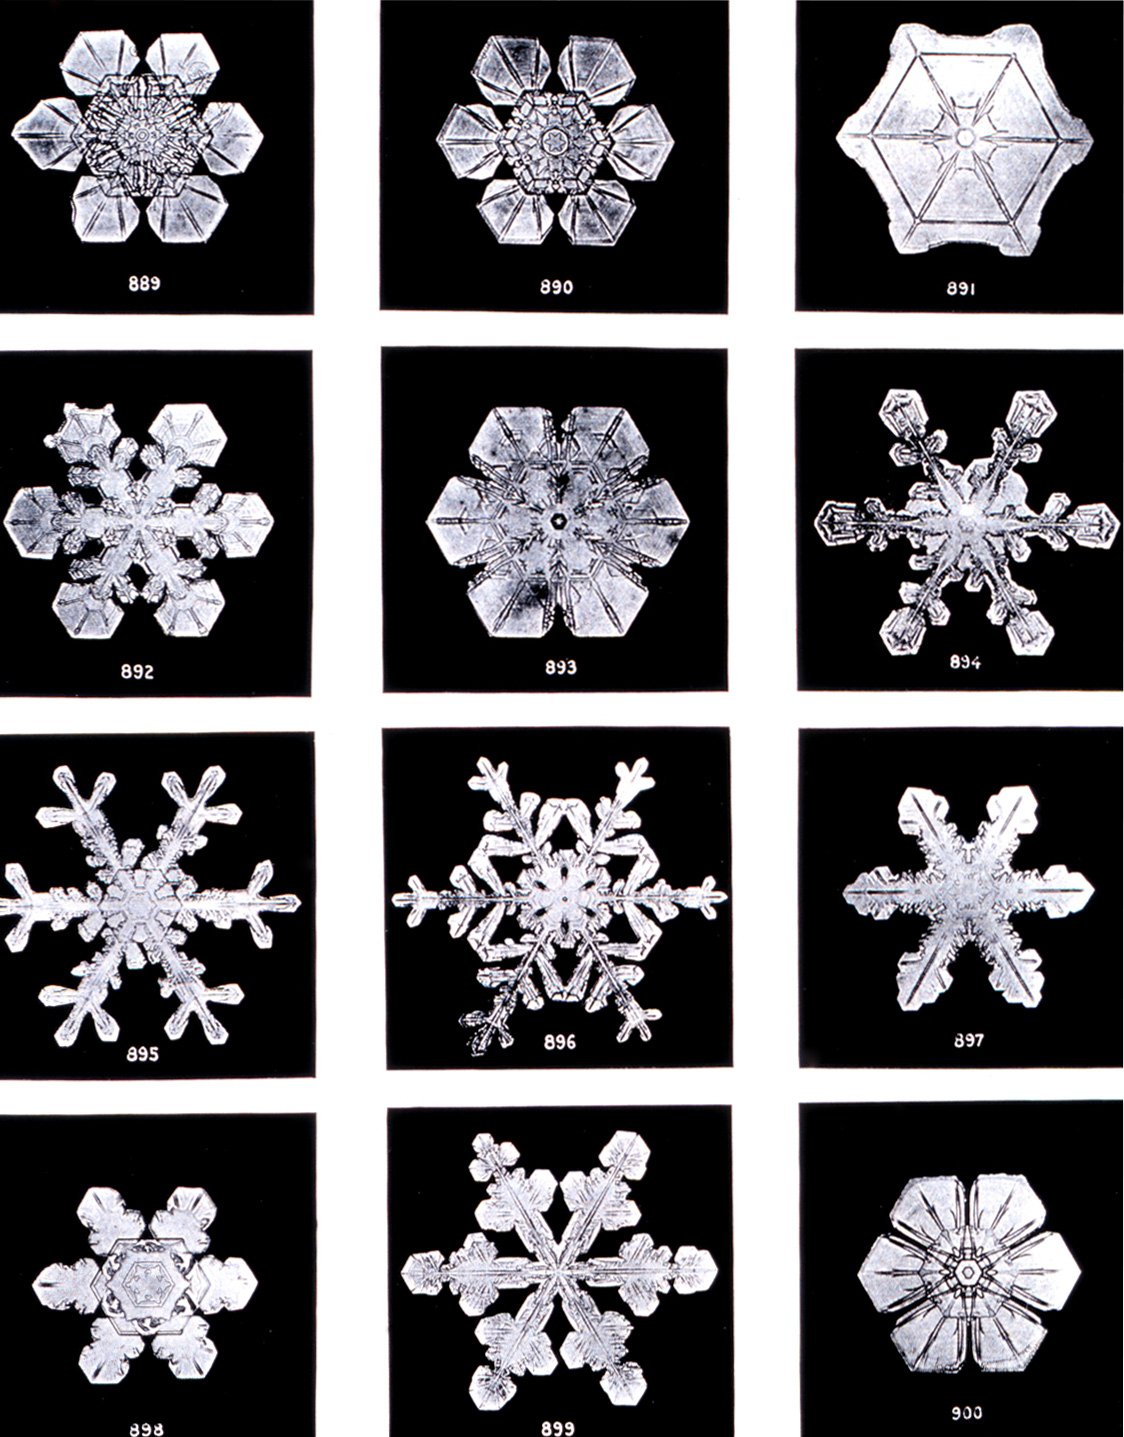 Bentley, Wilson A. Studies among the snow crystals during the winter of 1901-2